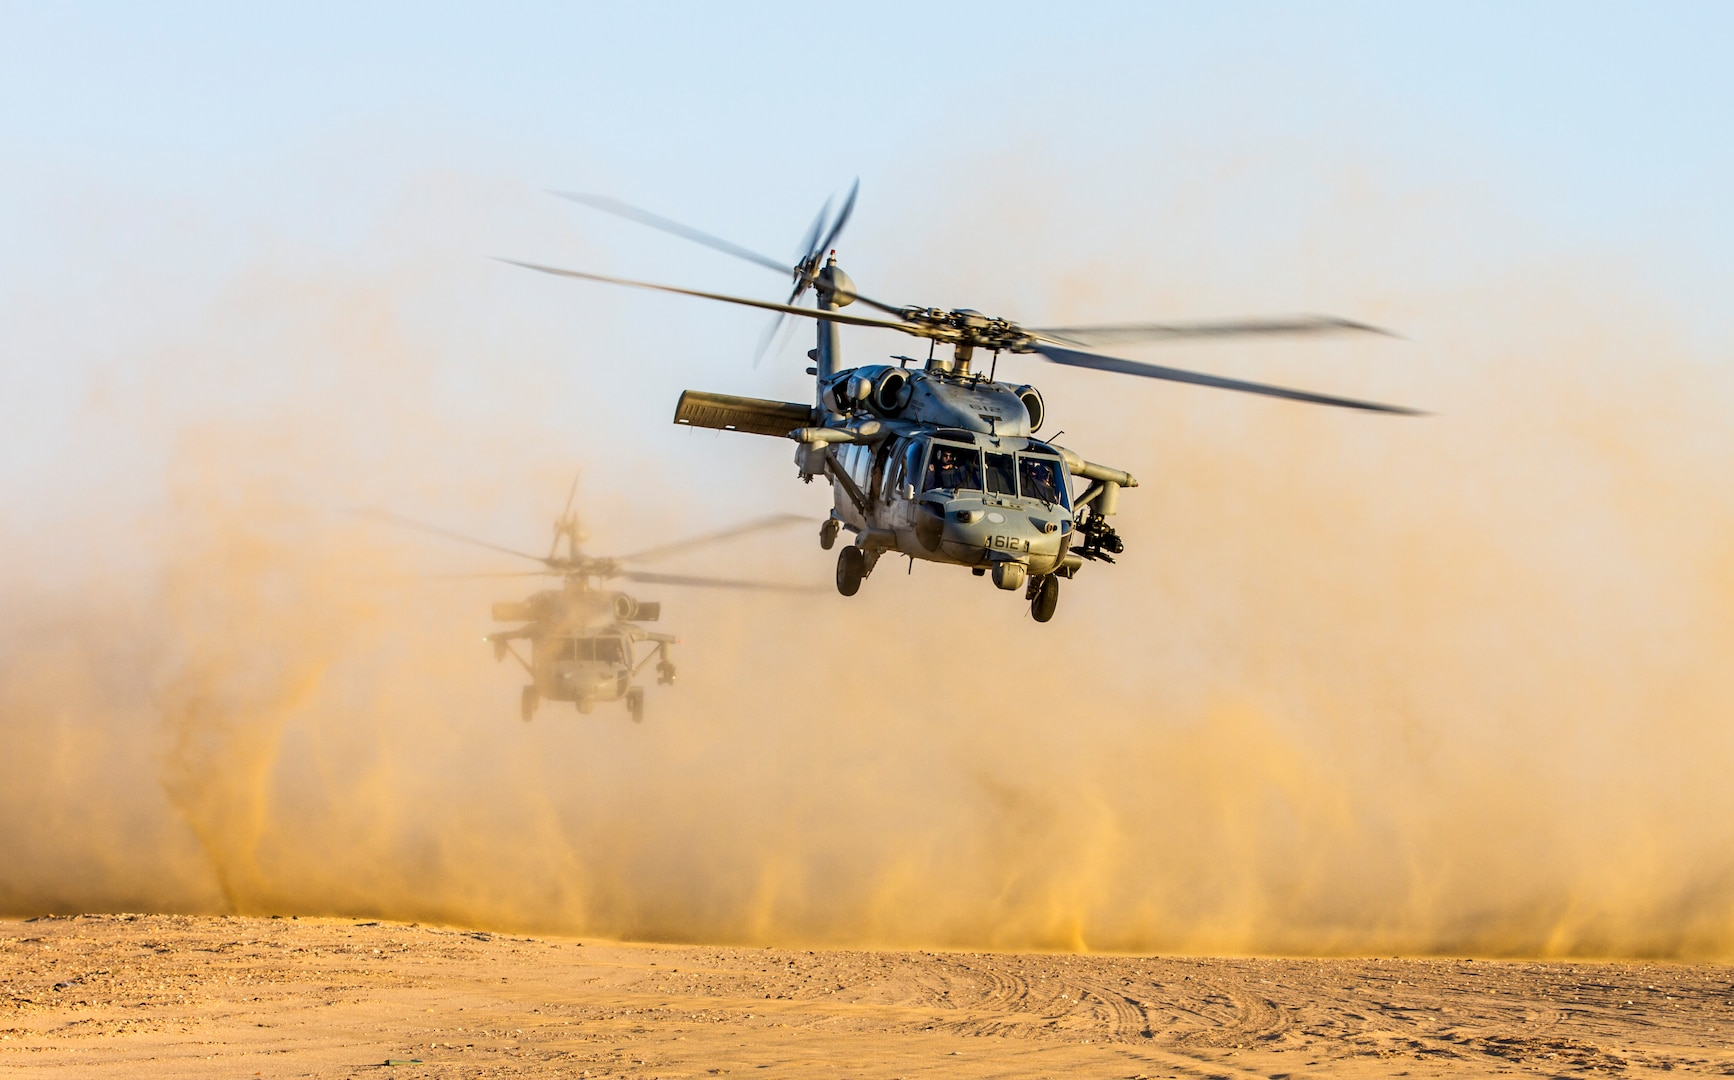 Two Navy MH-60S Sea Hawk helicopters from USS George H.W. Bush take off during joint fire exercise with Army AH-64 Apaches from 3rd Battalion, 159th Attack Reconnaissance Battalion, 42nd Combat Aviation Brigade, and Air Force joint terminal attack controllers from 82nd Expeditionary Air Operations Squadron, on July 8, 2014, near Camp Buehring, Kuwait (New York Army National Guard/Harley Jelis)